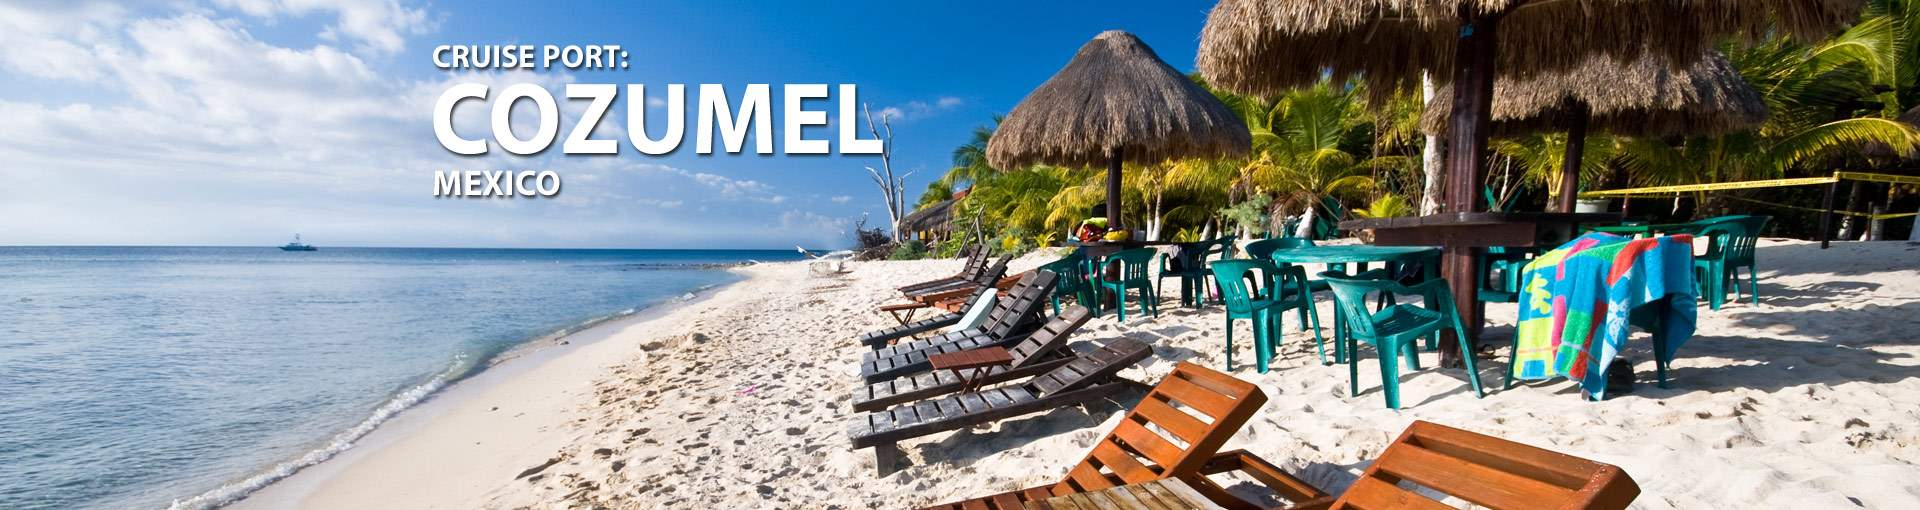 Cruises from Cozumel, Mexico